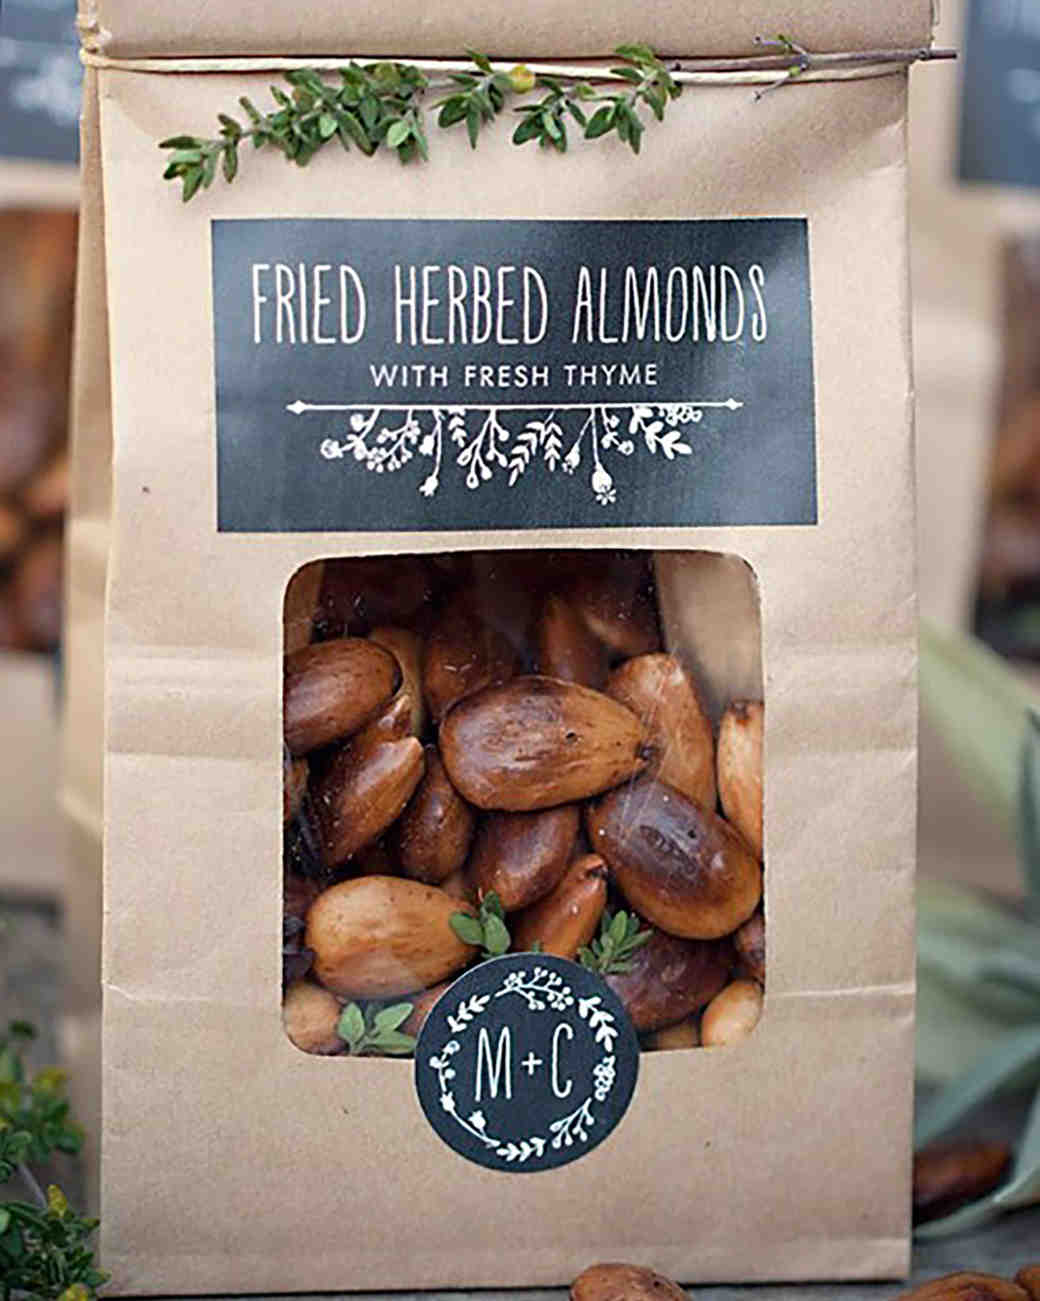 fried herb almonds edible wedding favors